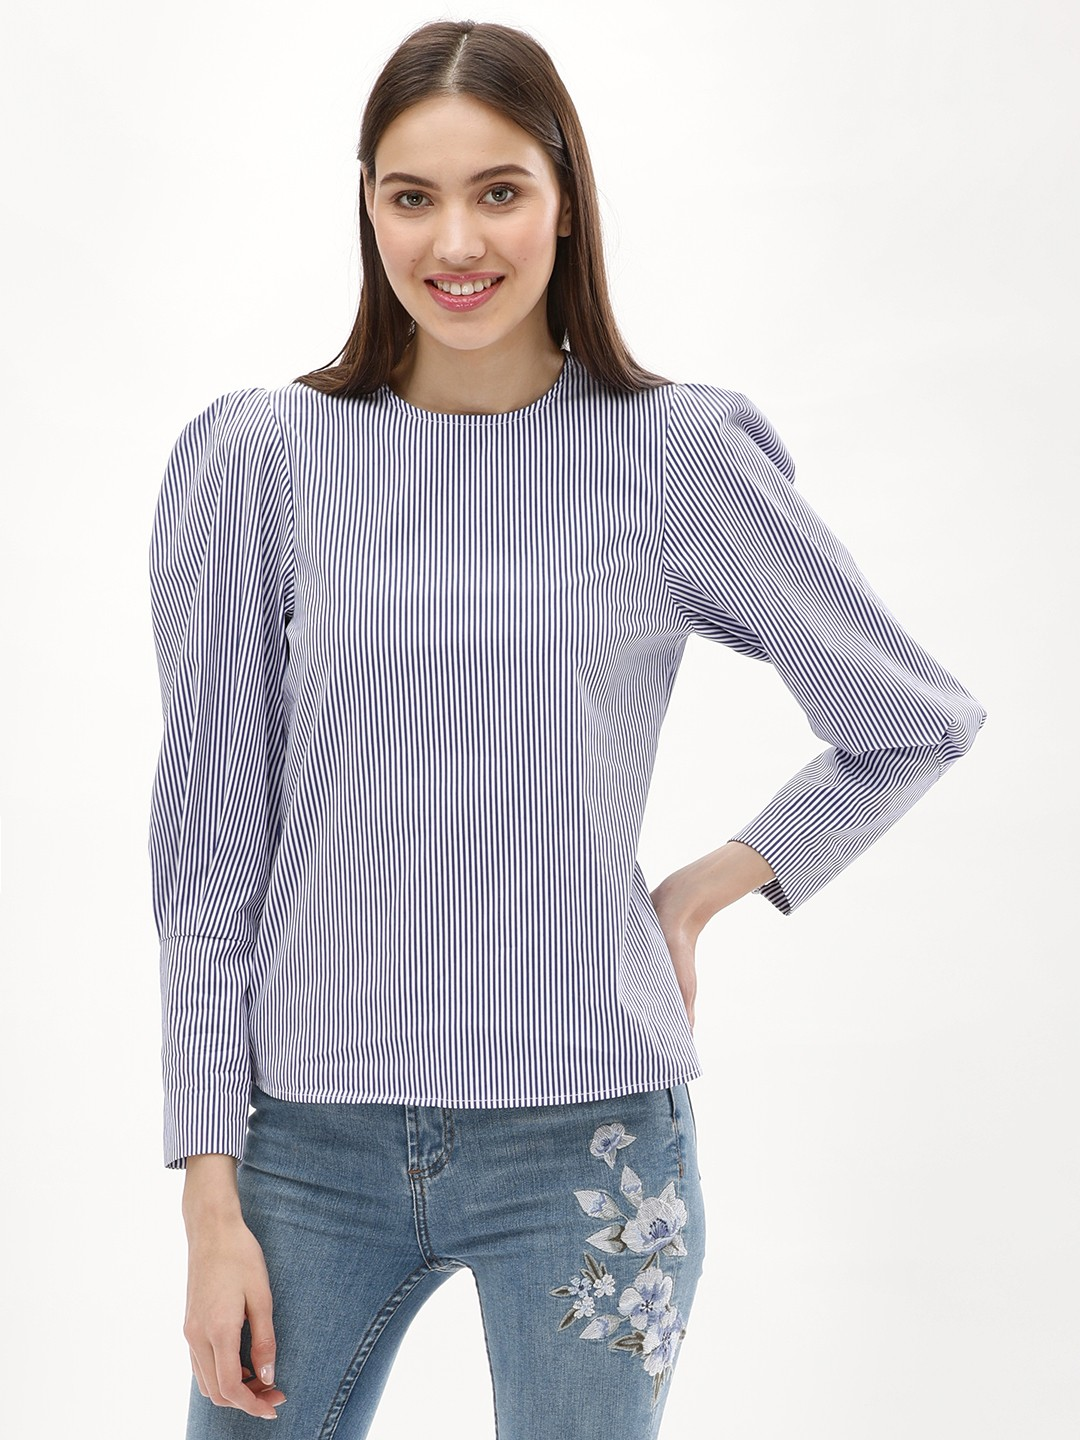 New Look BLUE PATTERN Striped Top 1